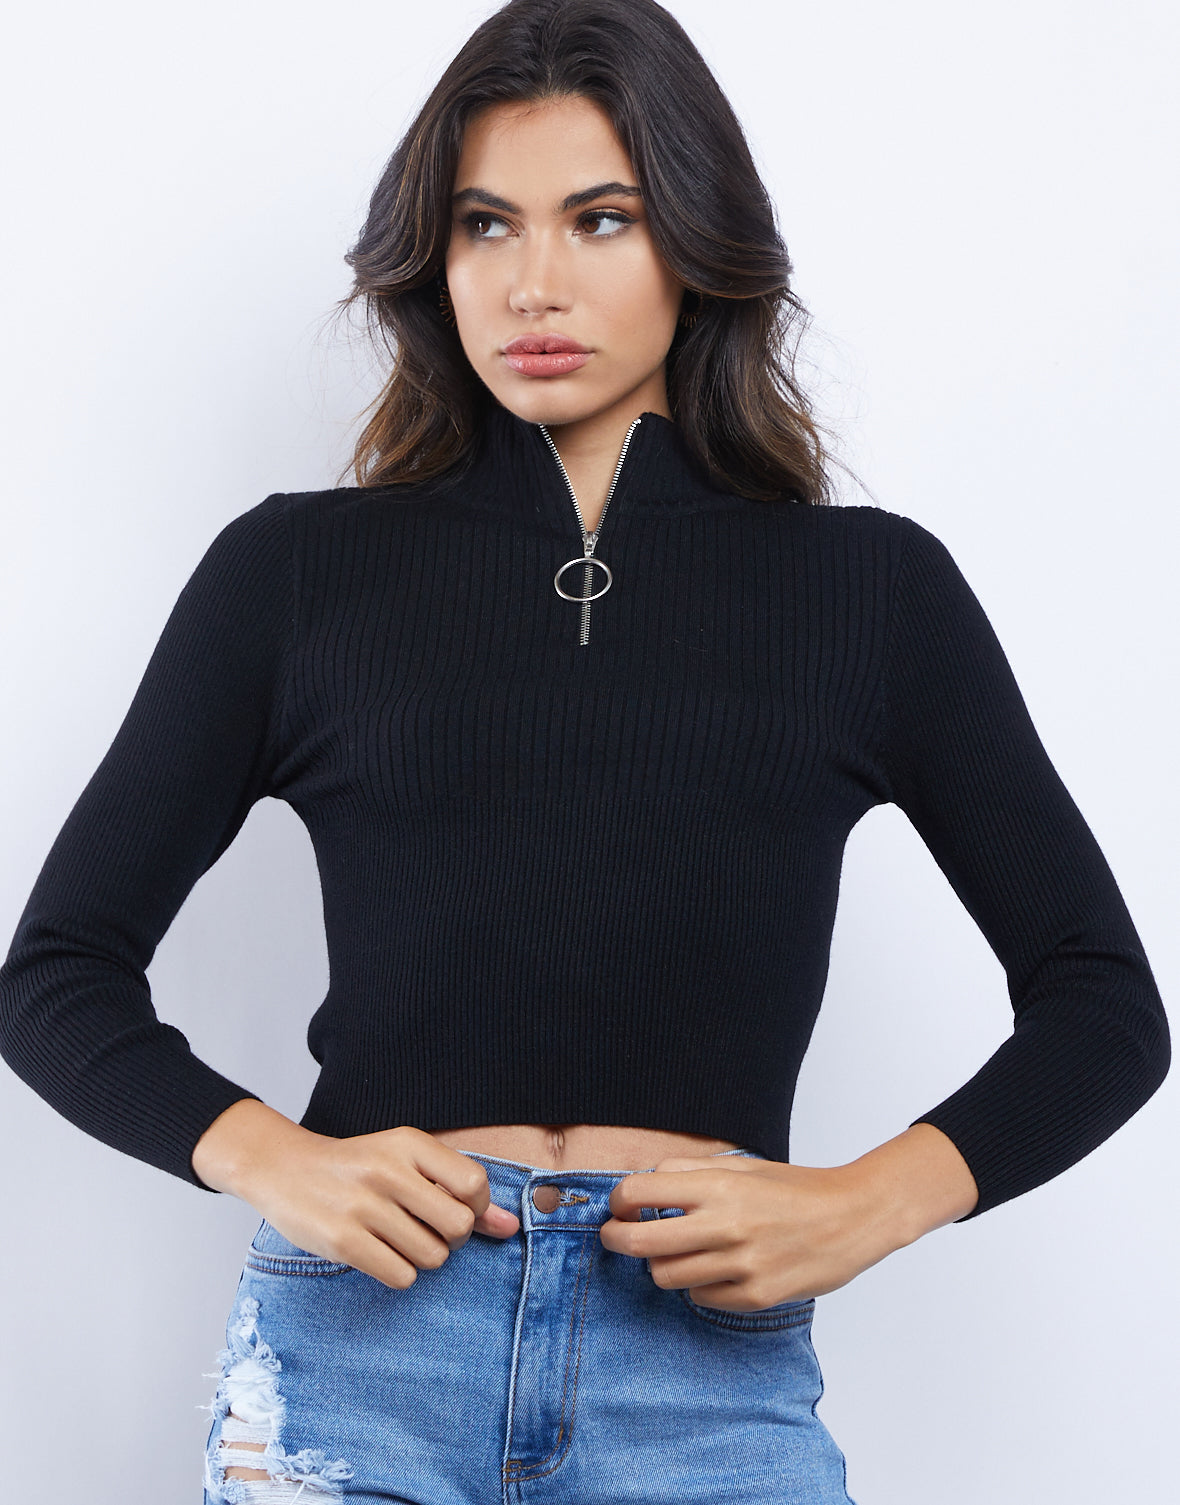 Sidni Ring Zipper Ribbed Top